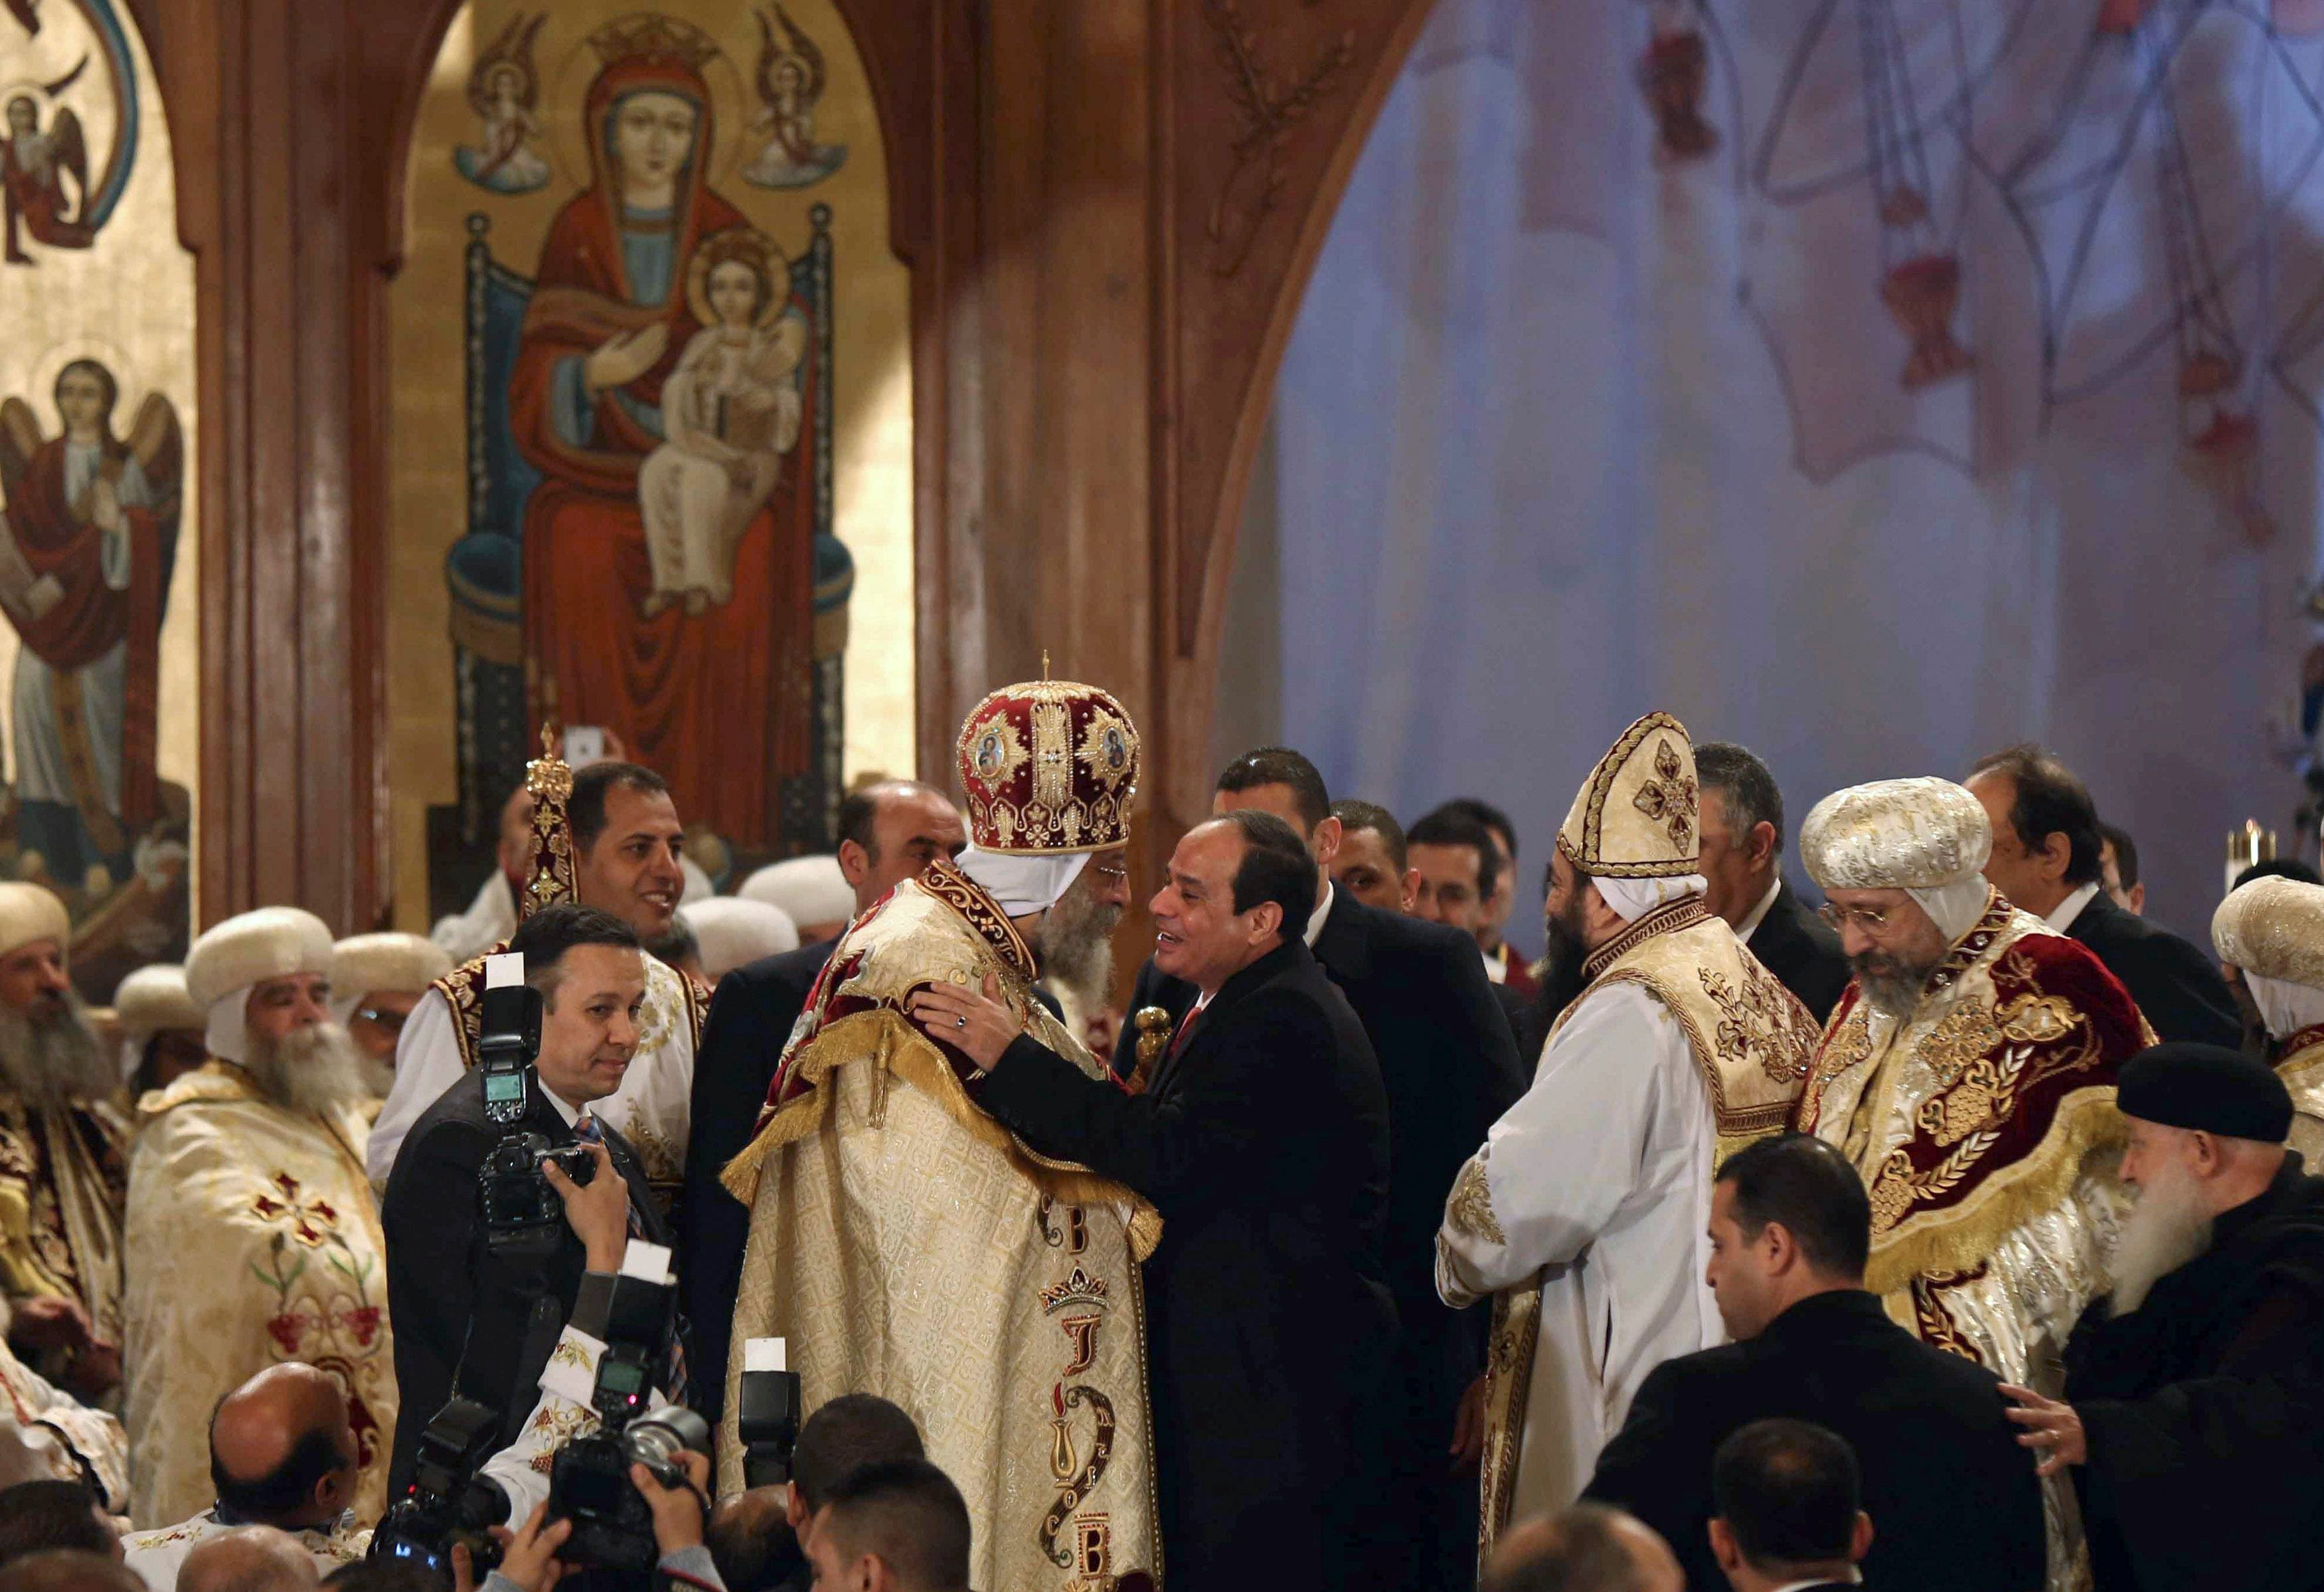 Egyptian President Abdel Fattah al-Sisi (centre R) greets Coptic Pope Tawadros II as he attends Christmas Eve Mass at at St. Mark's Cathedral, the seat of the Coptic Orthodox Pope, in Cairo January 6, 2015. REUTERS